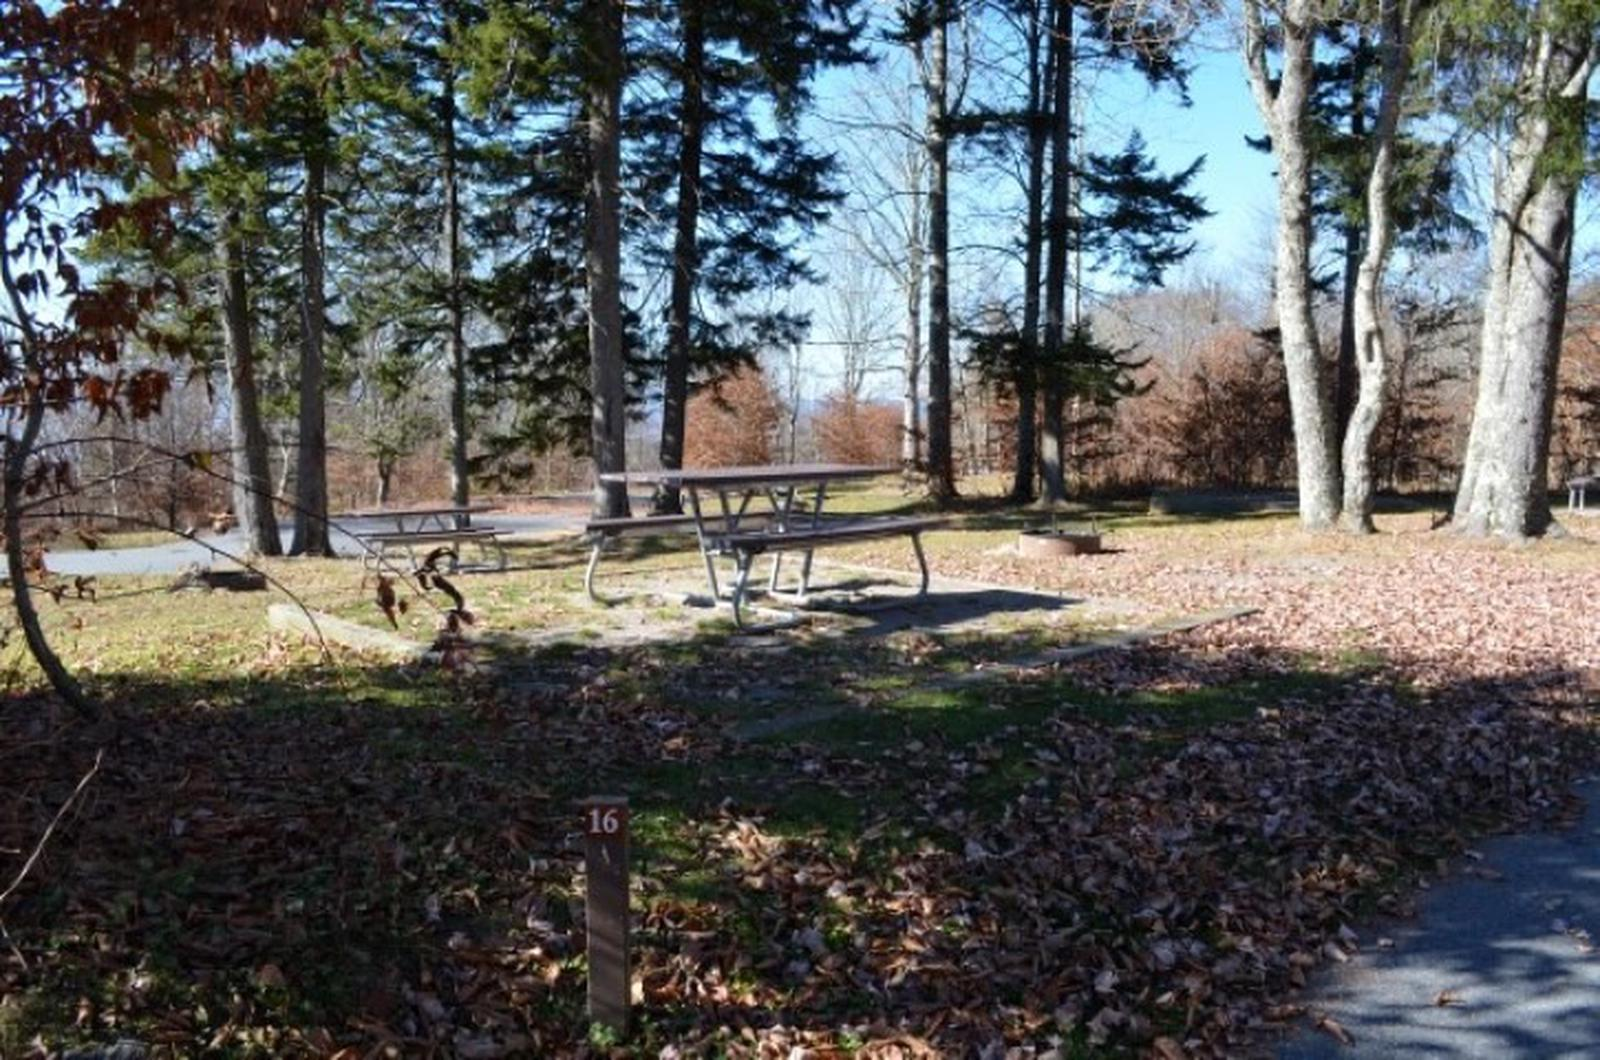 Balsam Mountain Campground Site 16